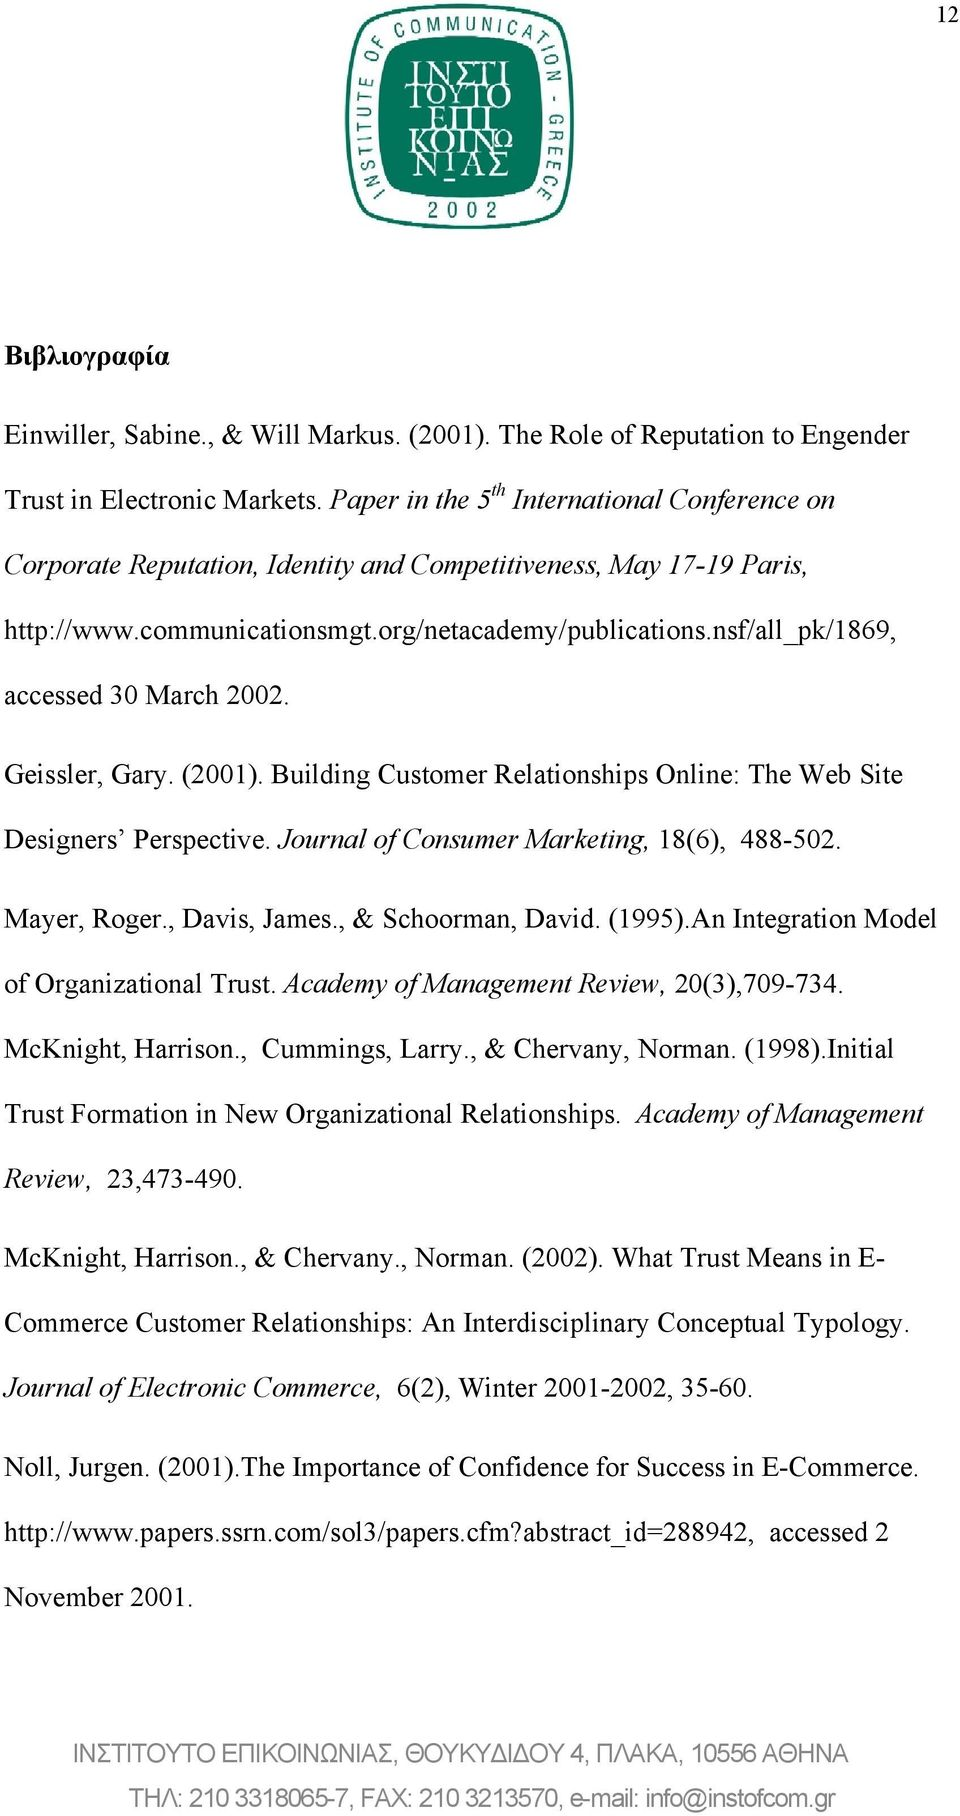 nsf/all_pk/1869, accessed 30 March 2002. Geissler, Gary. (2001). Building Customer Relationships Online: The Web Site Designers Perspective. Journal of Consumer Marketing, 18(6), 488-502.